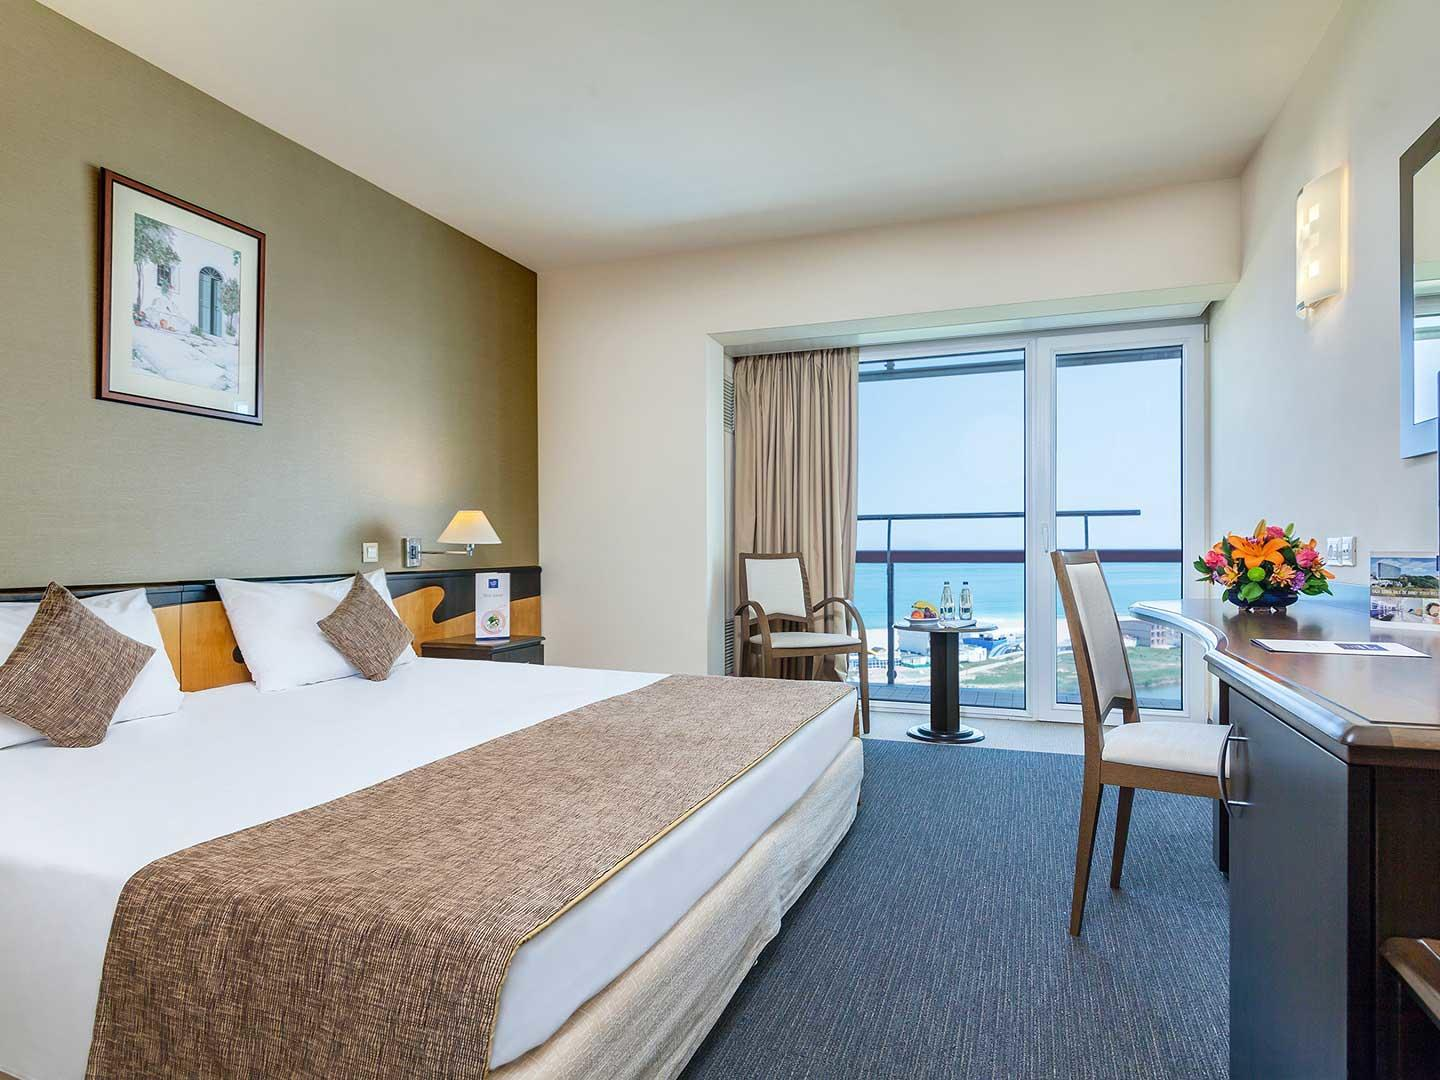 King Room at Ana Hotels Europa Eforie Nord